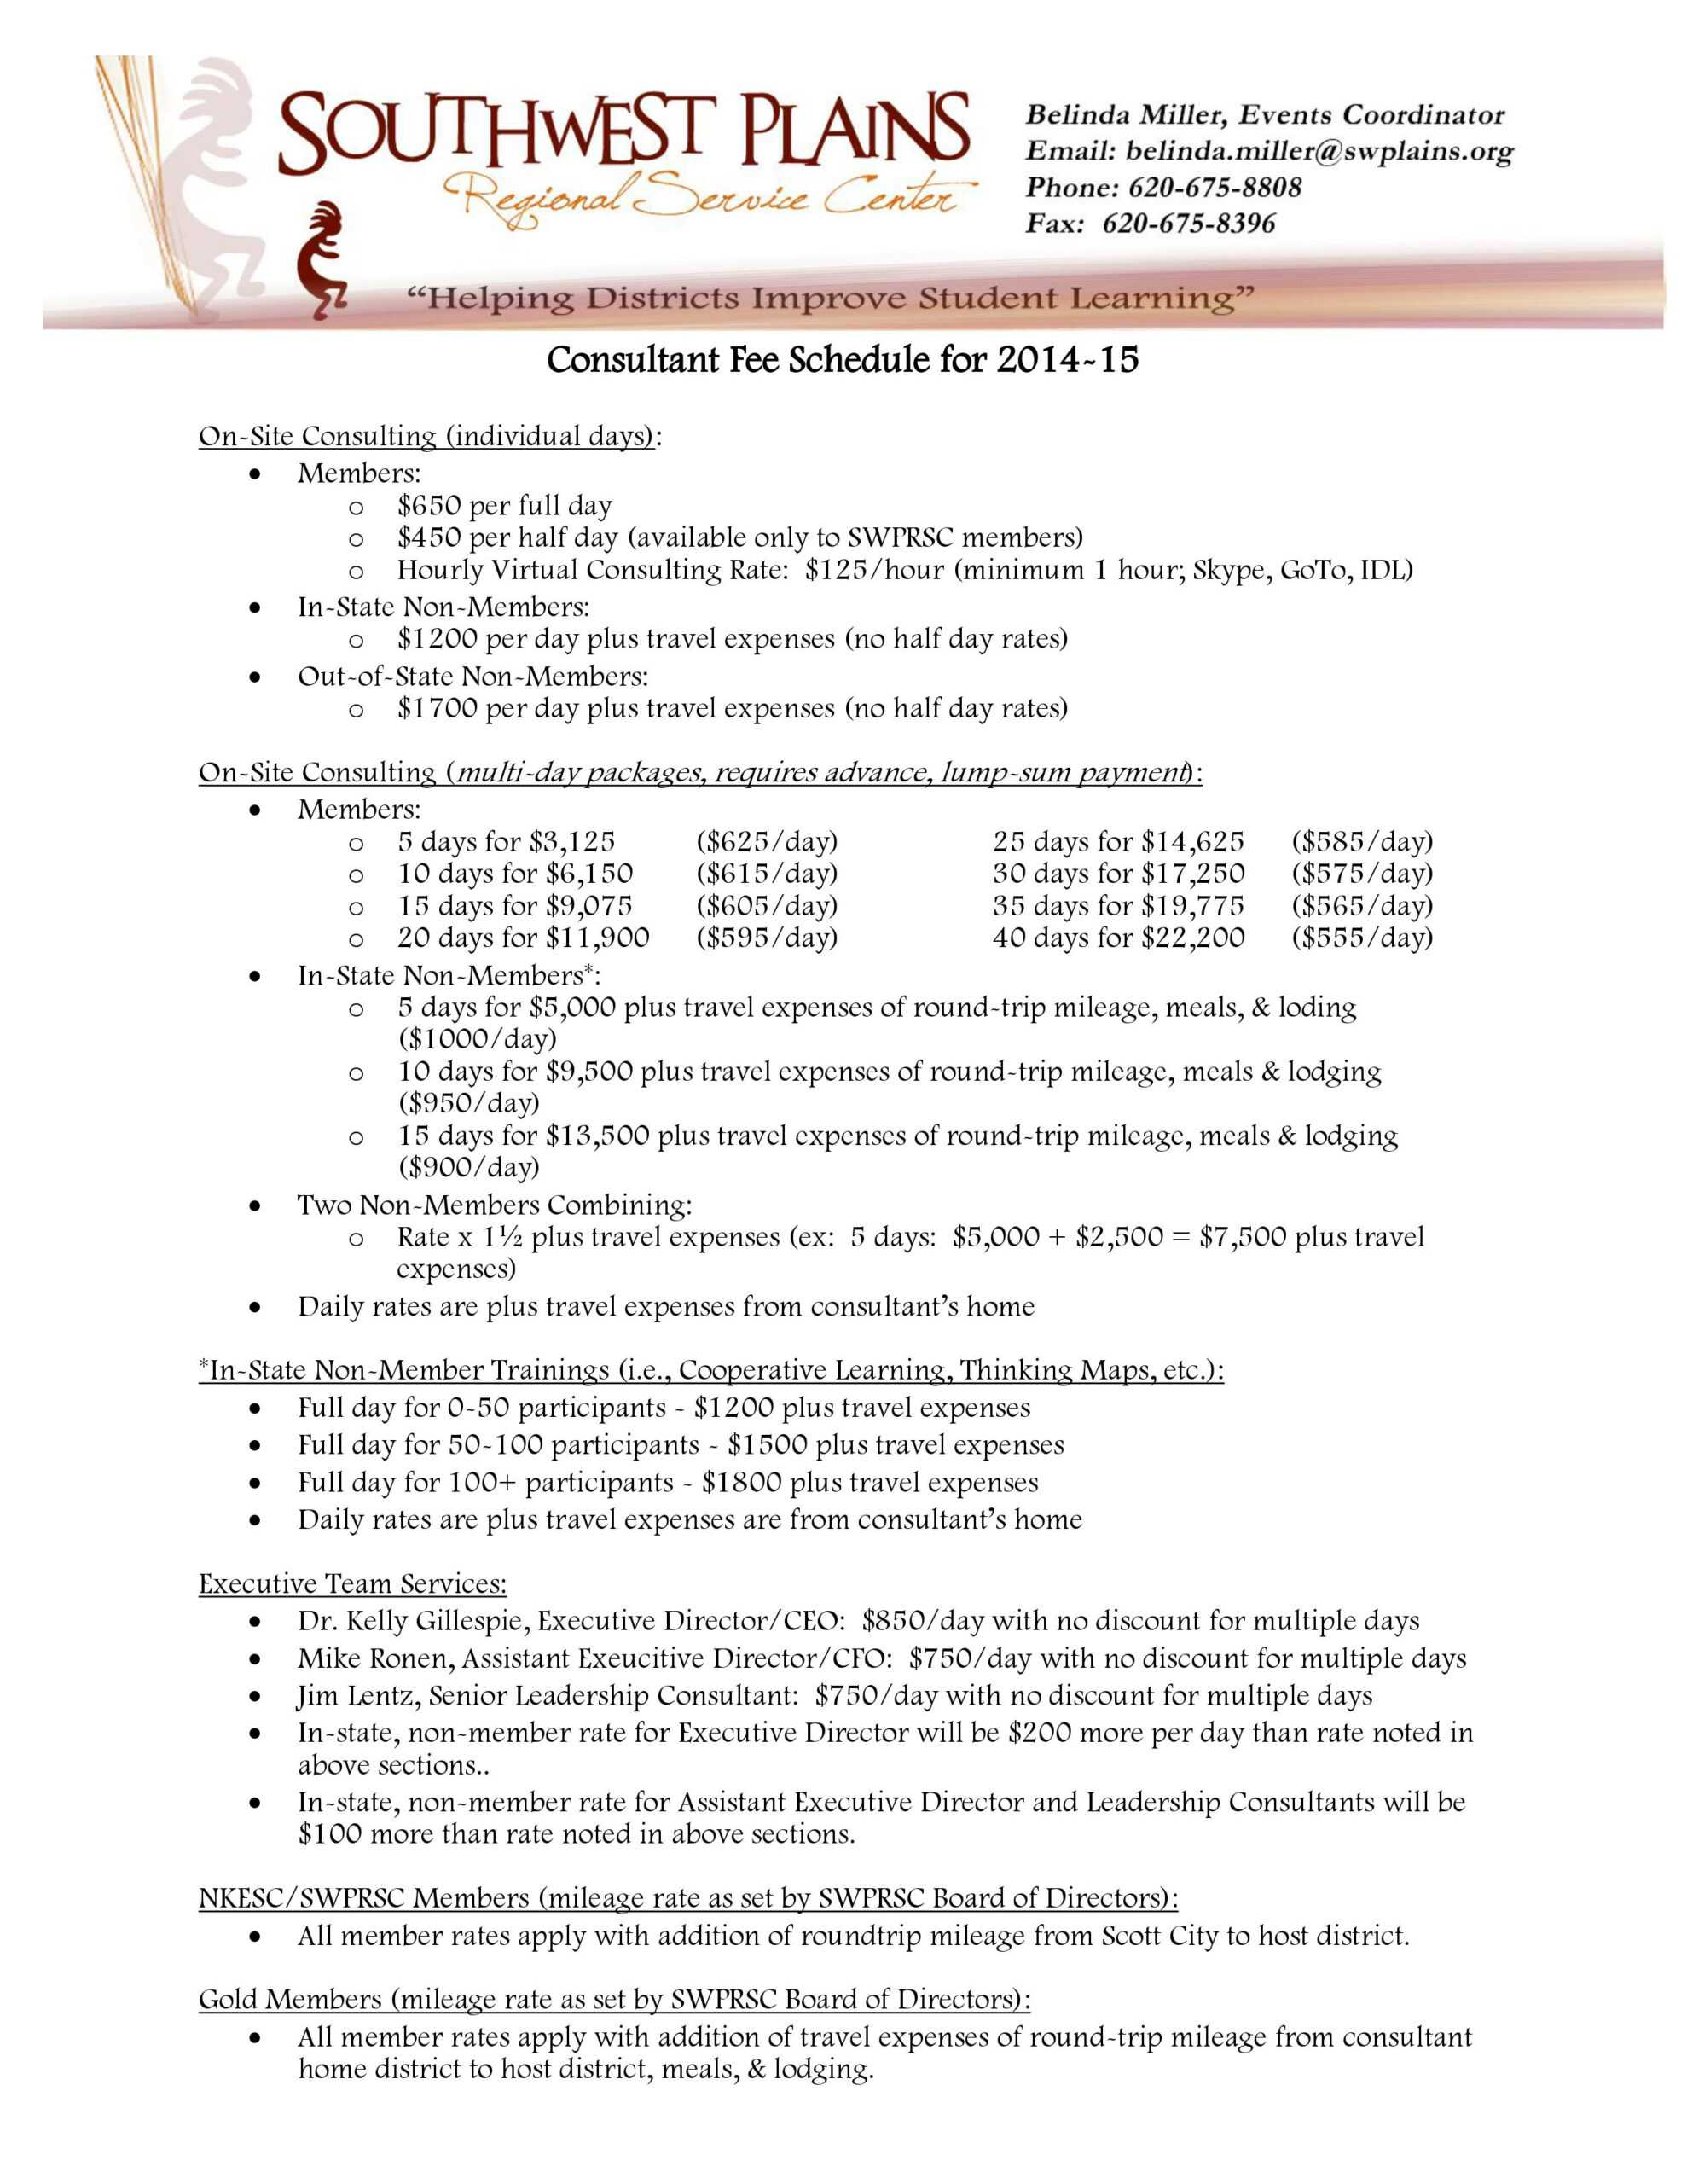 Download] Consultant Fee Schedule (Template) - Bonsai Pertaining To Fee Schedule Template